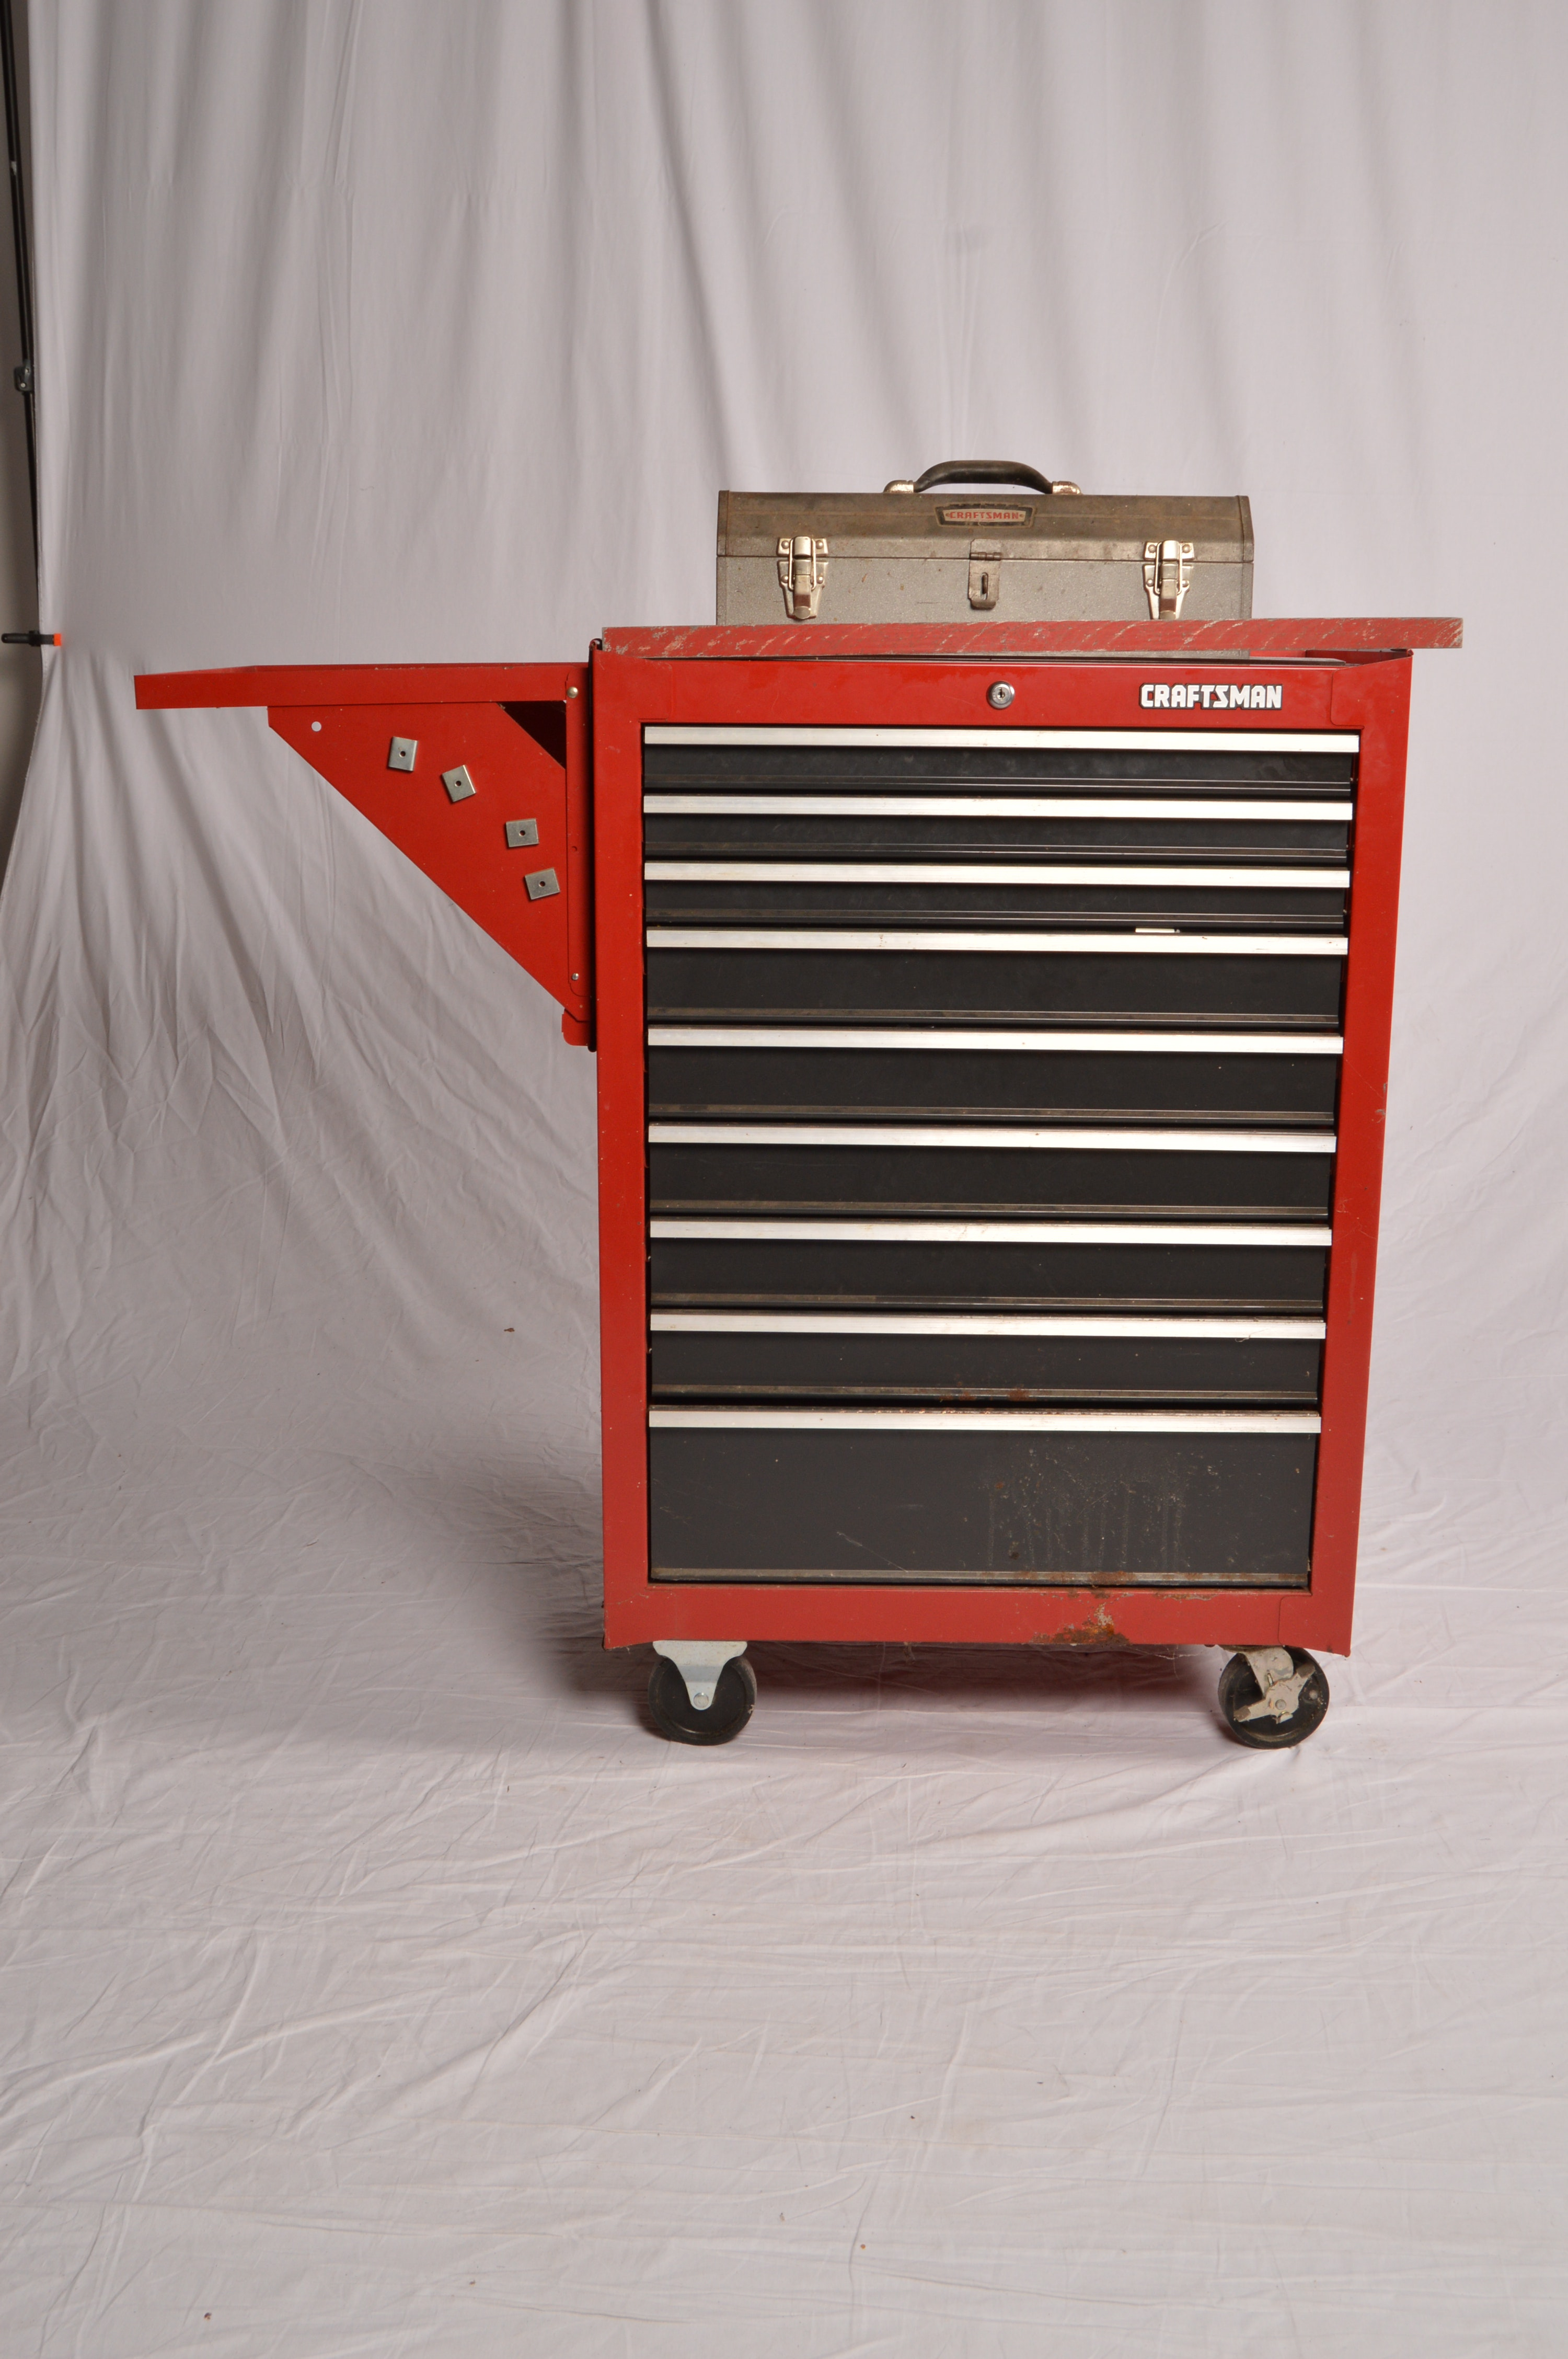 Craftsman Rolling Tool Chest, Handled Tool Box, and Tools